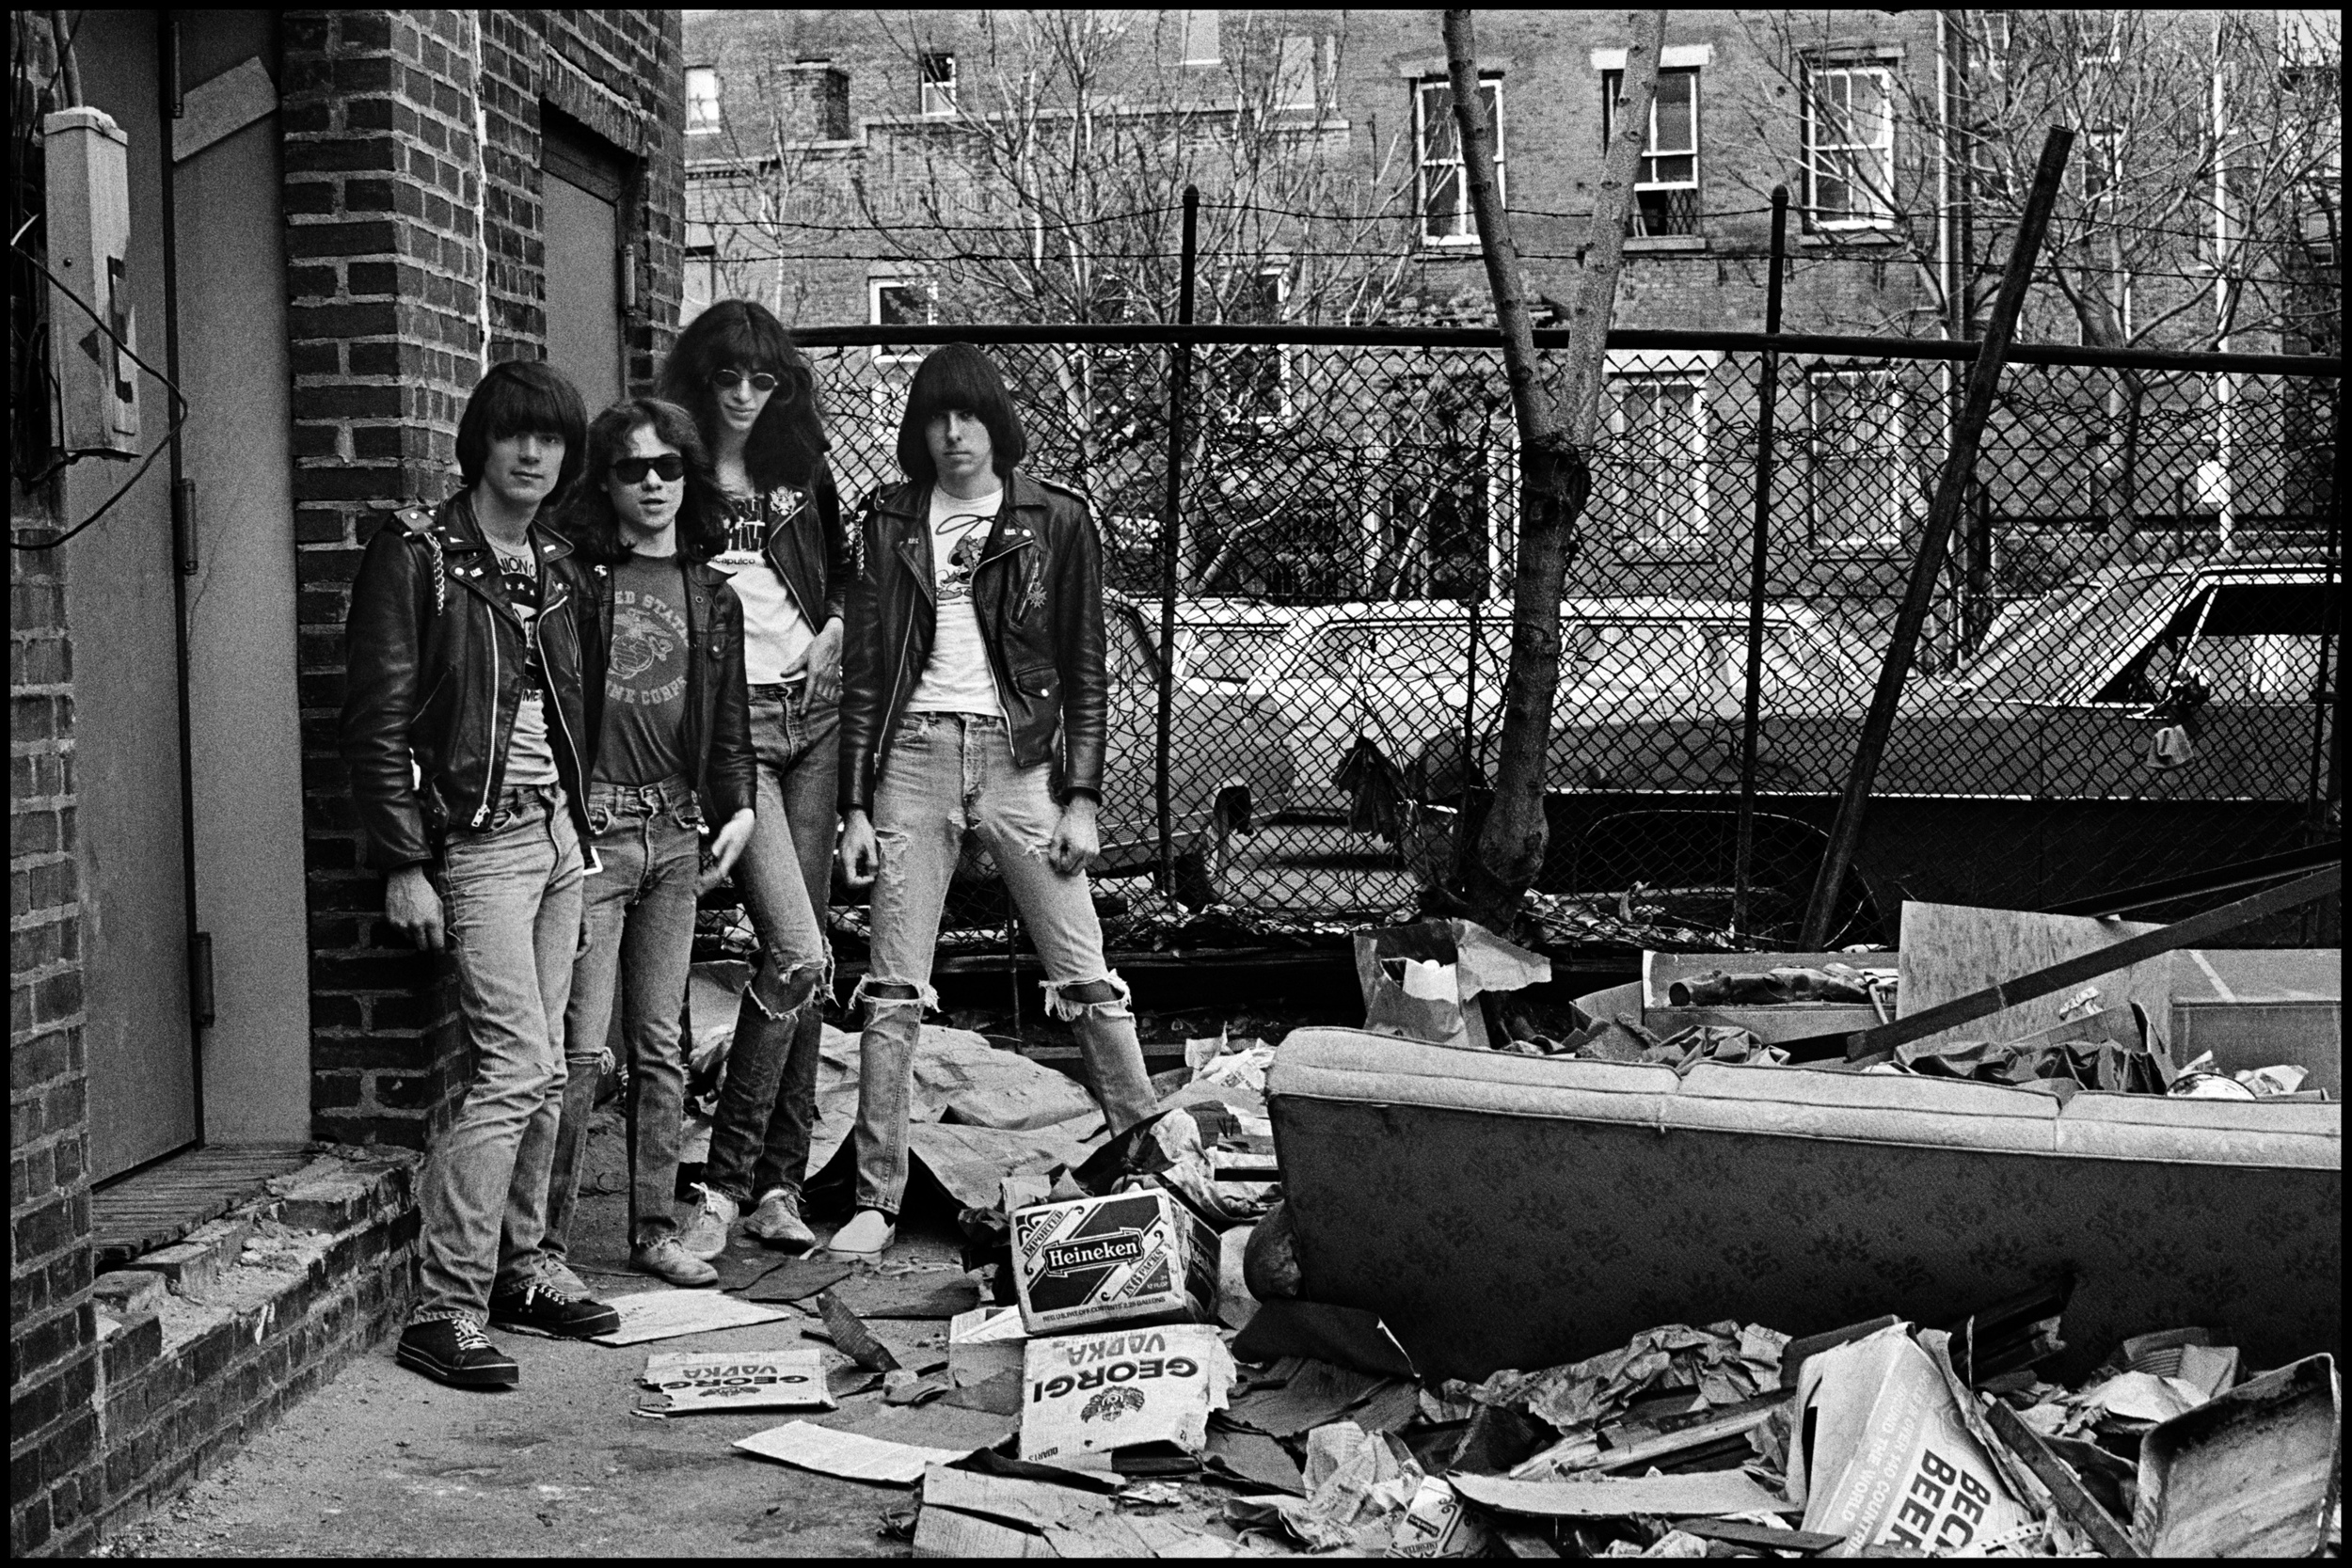 The Ramones - New York 1977  In April 1977 Mick Farren and I came to New York to check out the punk scene for the NME. We went to all the well known Clubs including CBGB's, Max's Kansas City, the Bottom Line, Danceteria and the Mudd Club.  Joey Ramone lived close to CBGB'S which was on the Bowery in the Lower East Side of Manhattan. Initially we took photos on the roof of Joey's apartment building but although it looked like New York it did not really have the right feel.  I had spotted this alley when walking over to Joey's place, it was a block from  the Bowery and seemed perfect to me, it was full of trash and totally run down, back then huge parts of Manhattan were like this, the money had run out and the city was bankrupt.  I dragged the four Ramones to the location, I did a number of group shots, aided by their Artistic Director the late Arturo Vega. It seemed odd having somebody else telling the band what to do, all they did was stand there in a line, but it made them relaxed so I was happy to let him help.  To me this sums up the American Punk scene at that time, leather jackets, t shirts and jeans was the look they all had, it's a shame the Ramones never had the true success they deserved, but their influence should never be underestimated.